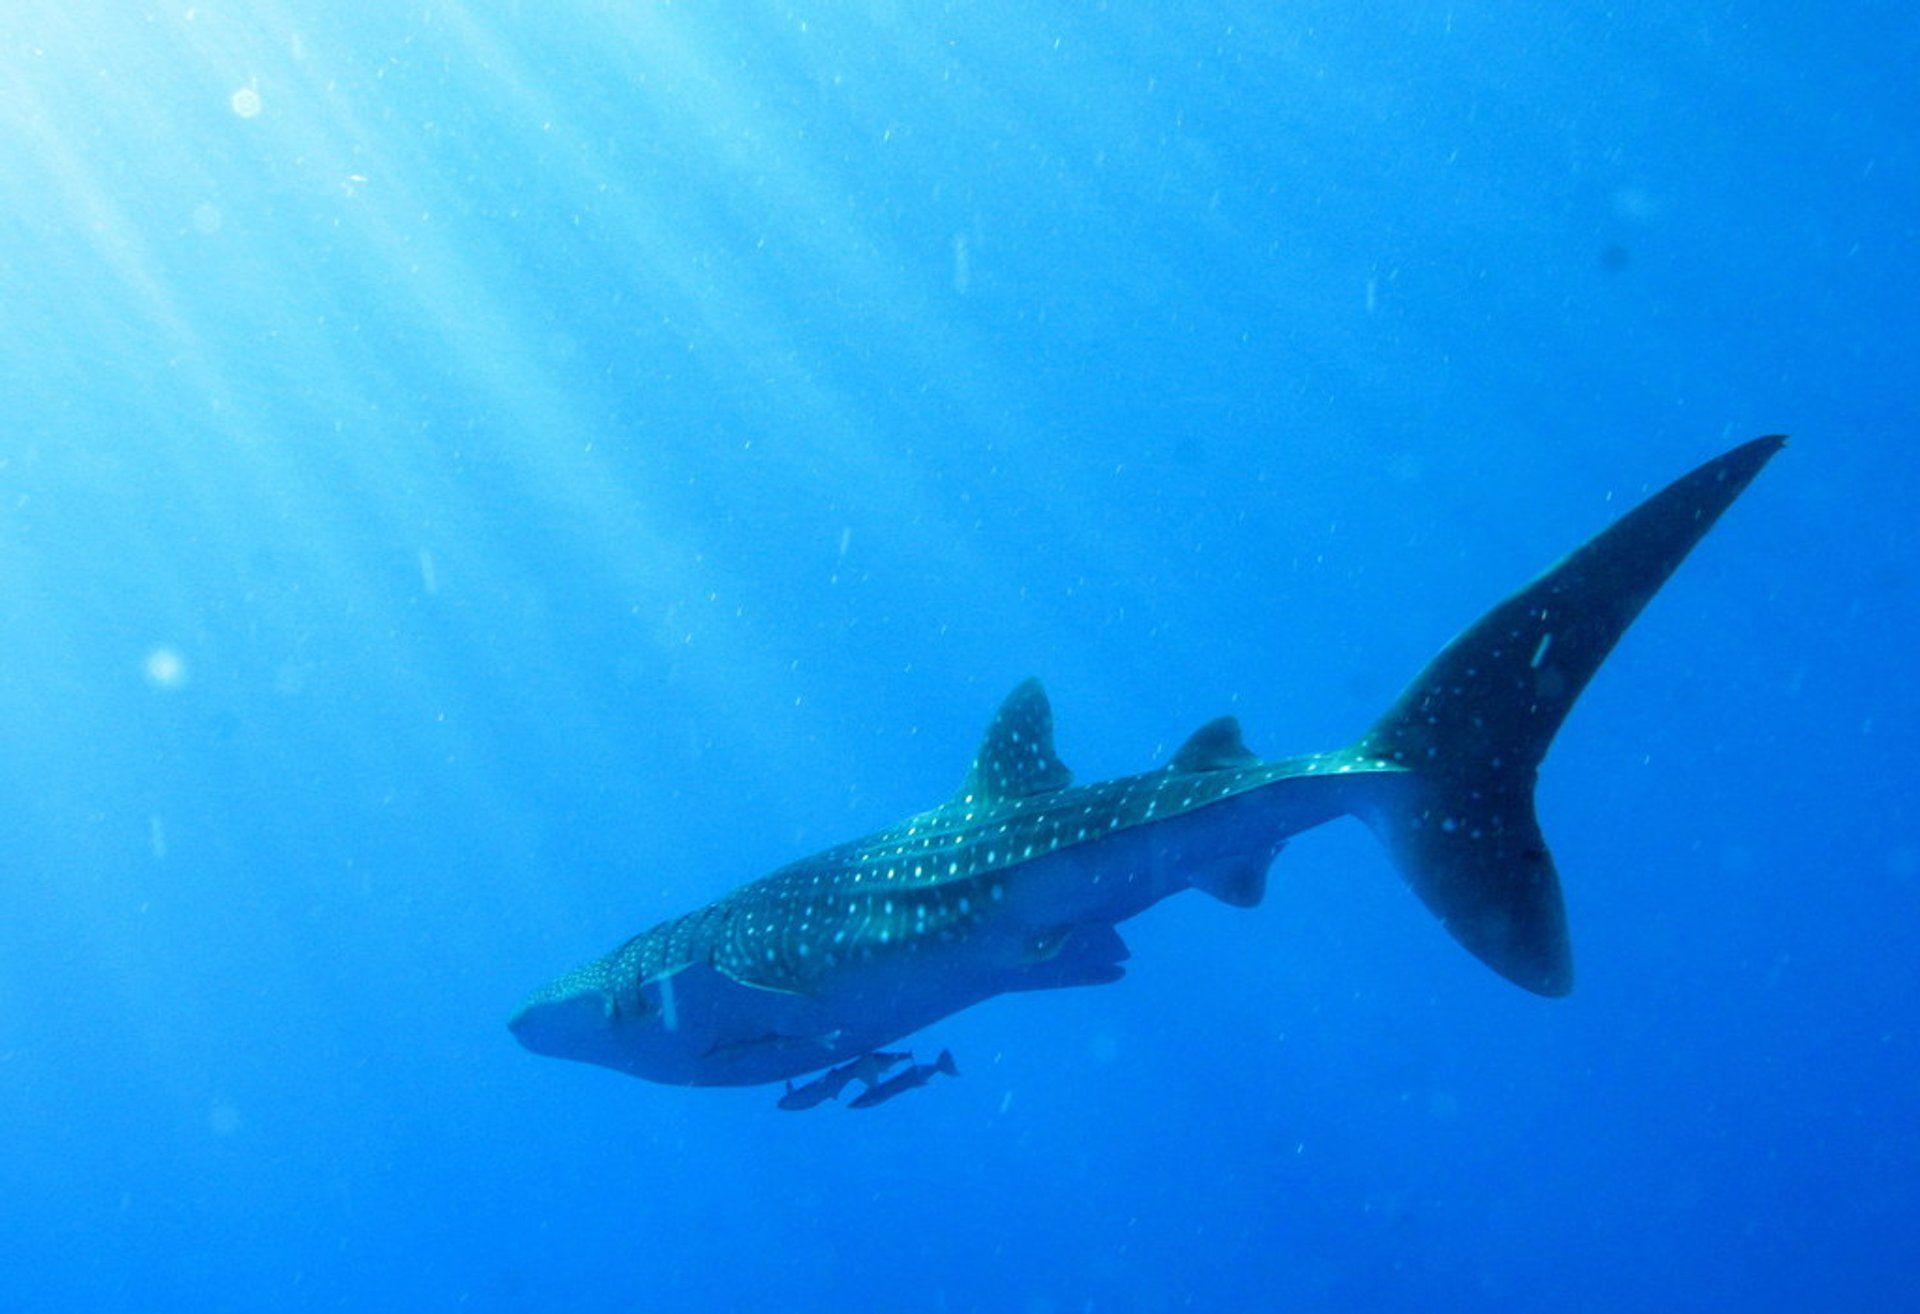 Whaleshark near Daedalus Reef, Red Sea 2019